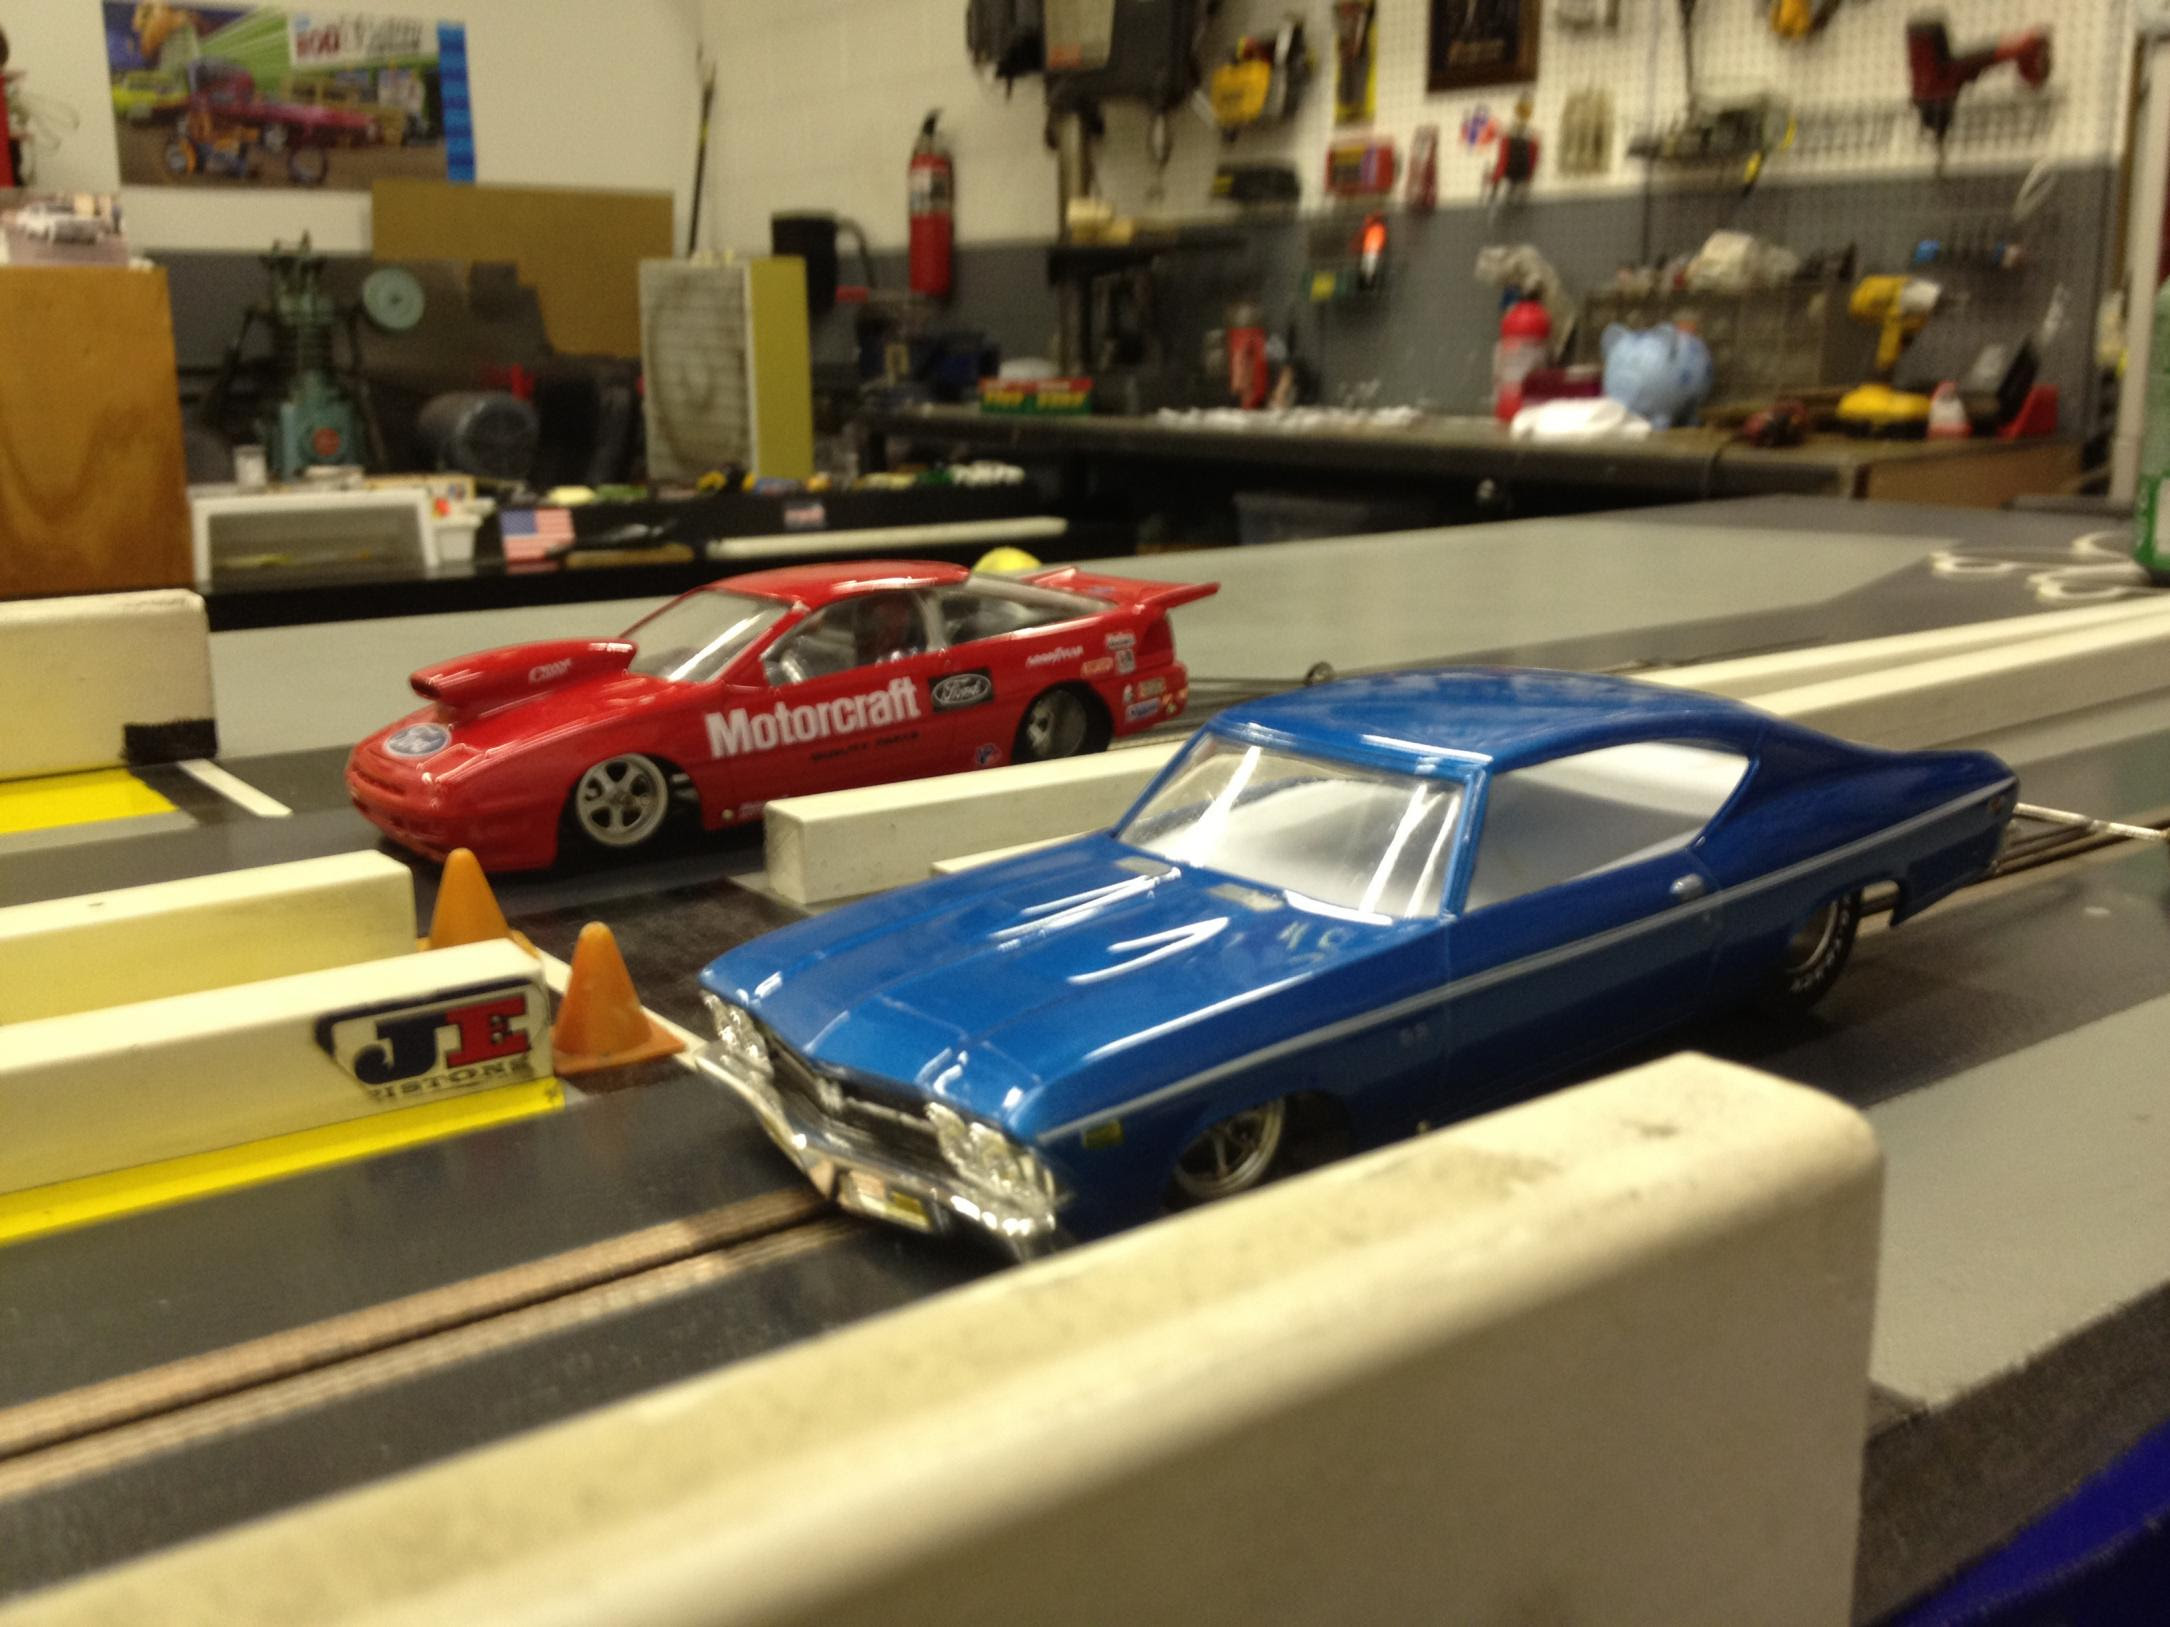 HO Slot Car Racing In The Denver Metro Area of Colorado Everyone Welcome Cars & Controllers Provided For Newcomers.MHOSA Slot Car Tracks.Original Slot Car Patent.Winter Season MHOSA Race Schedule.We have Loaner Cars & Controllers!